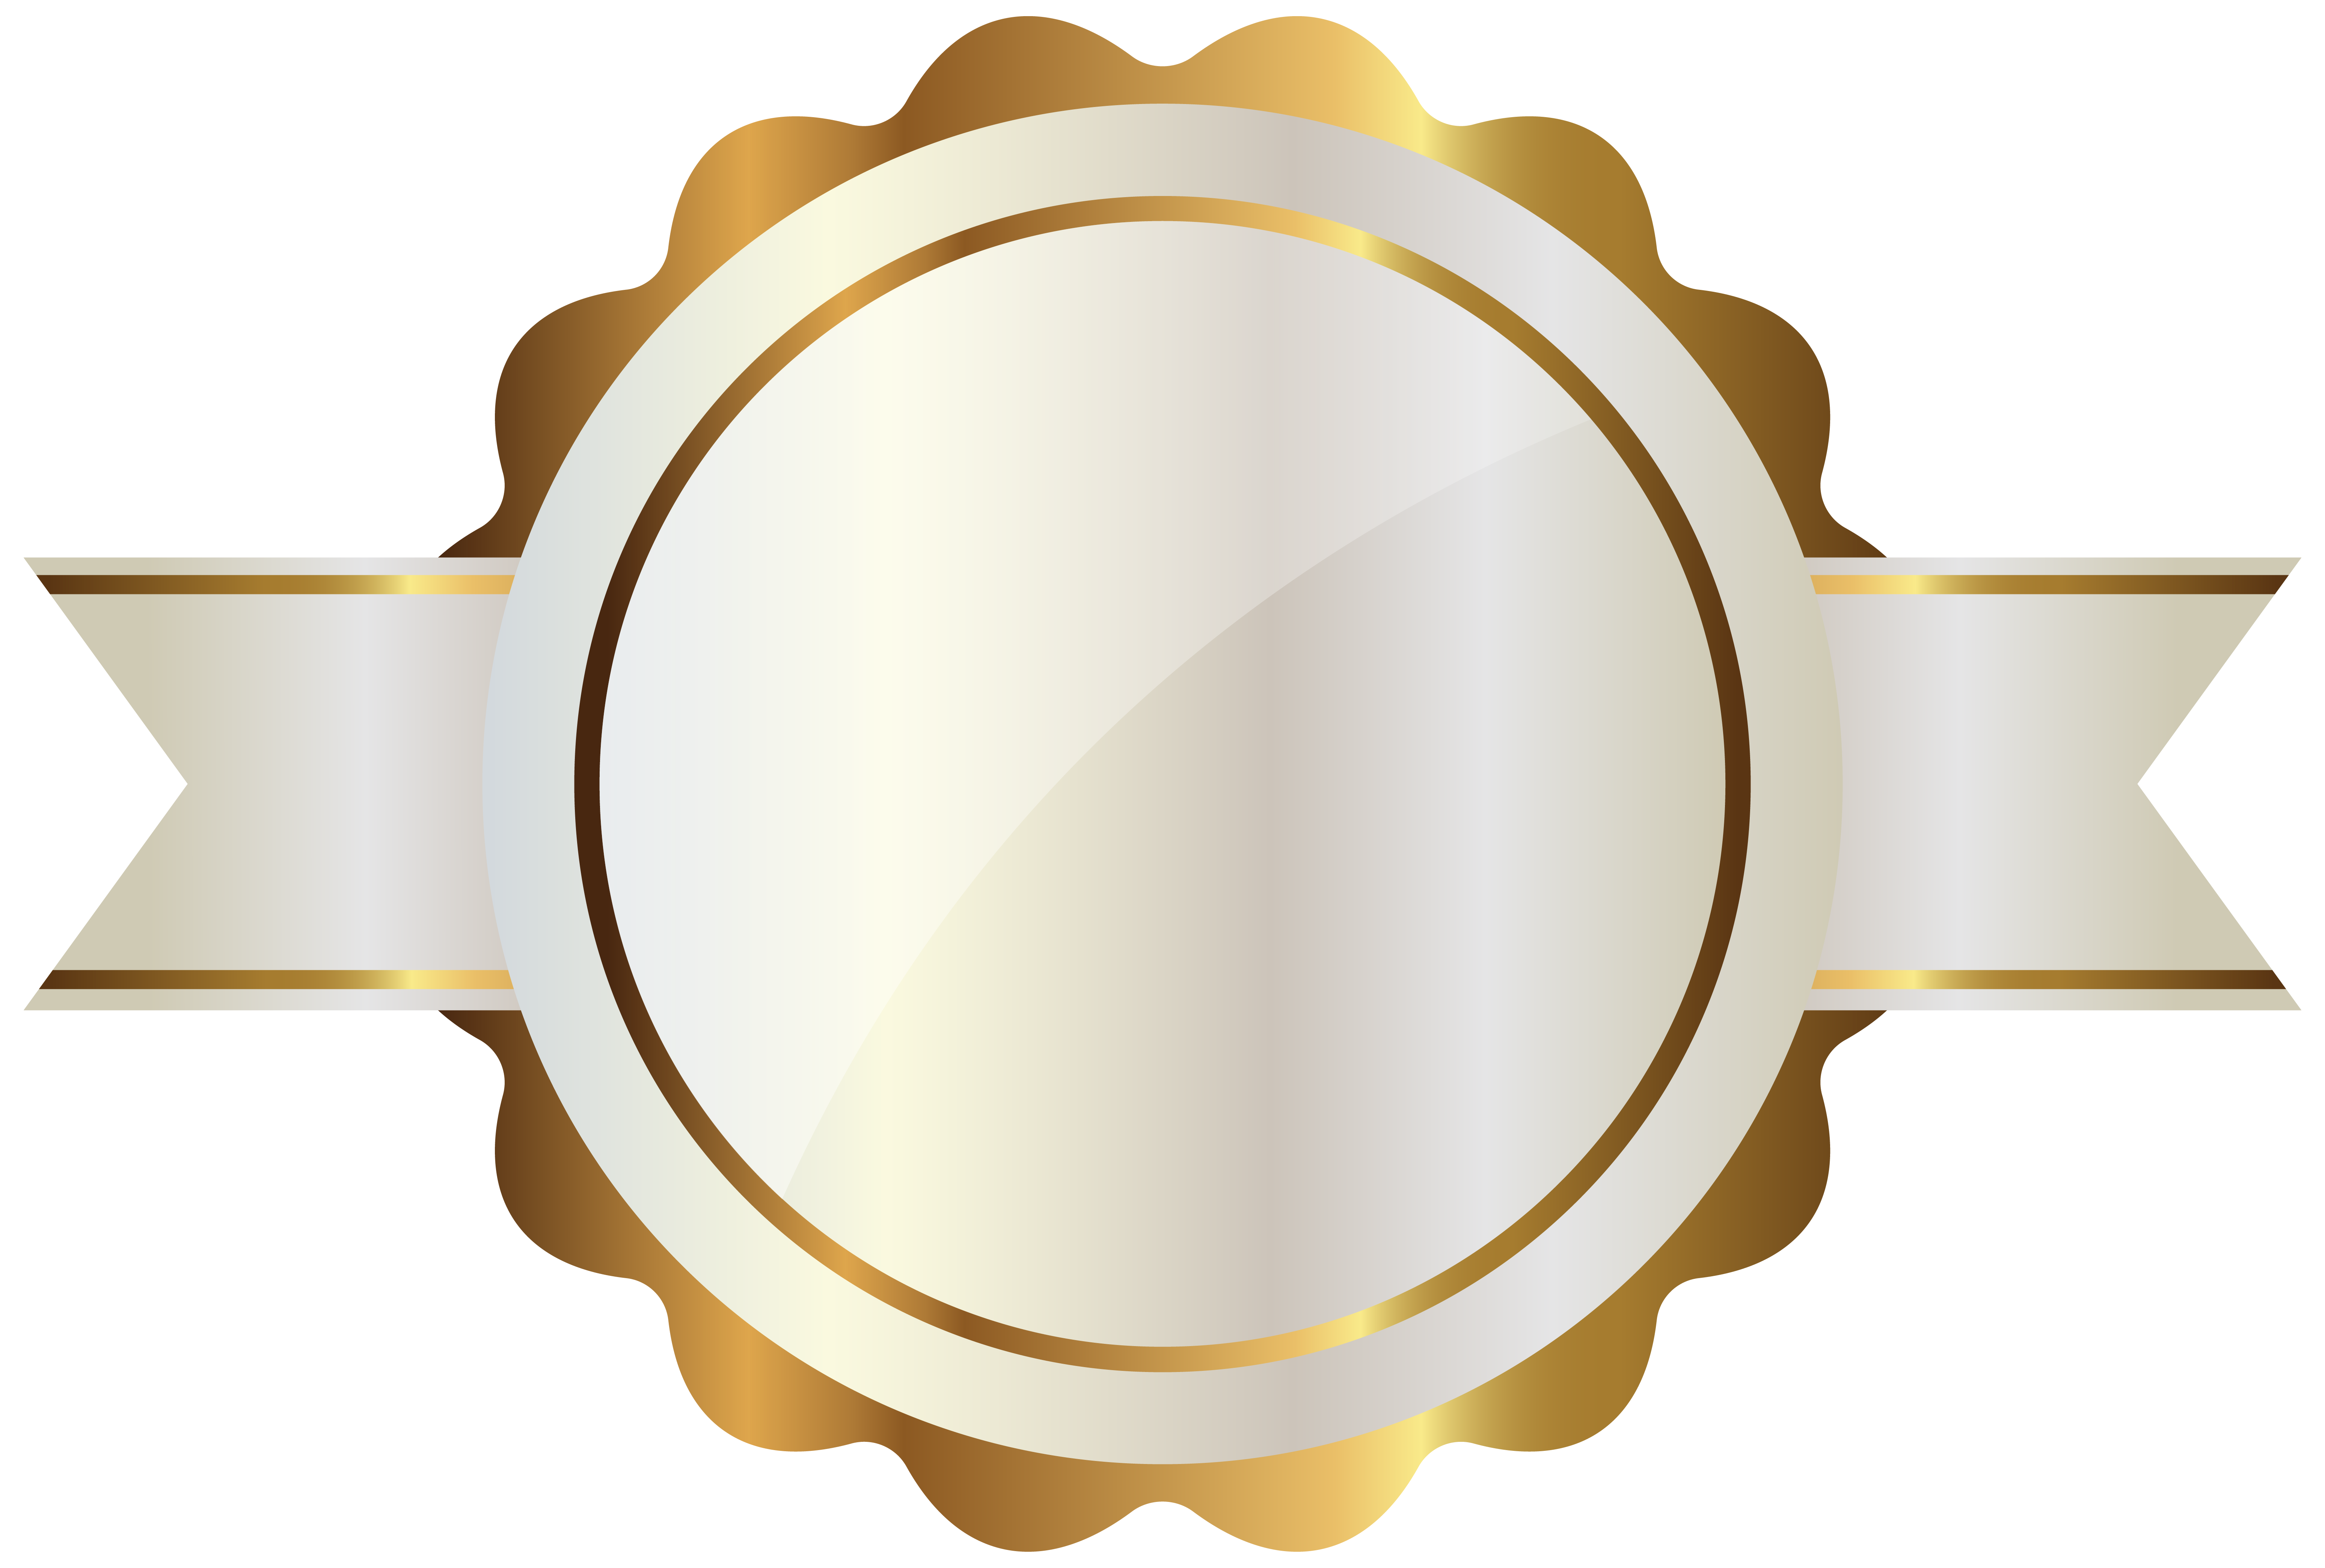 E clipart gold, E gold Transparent FREE for download on.